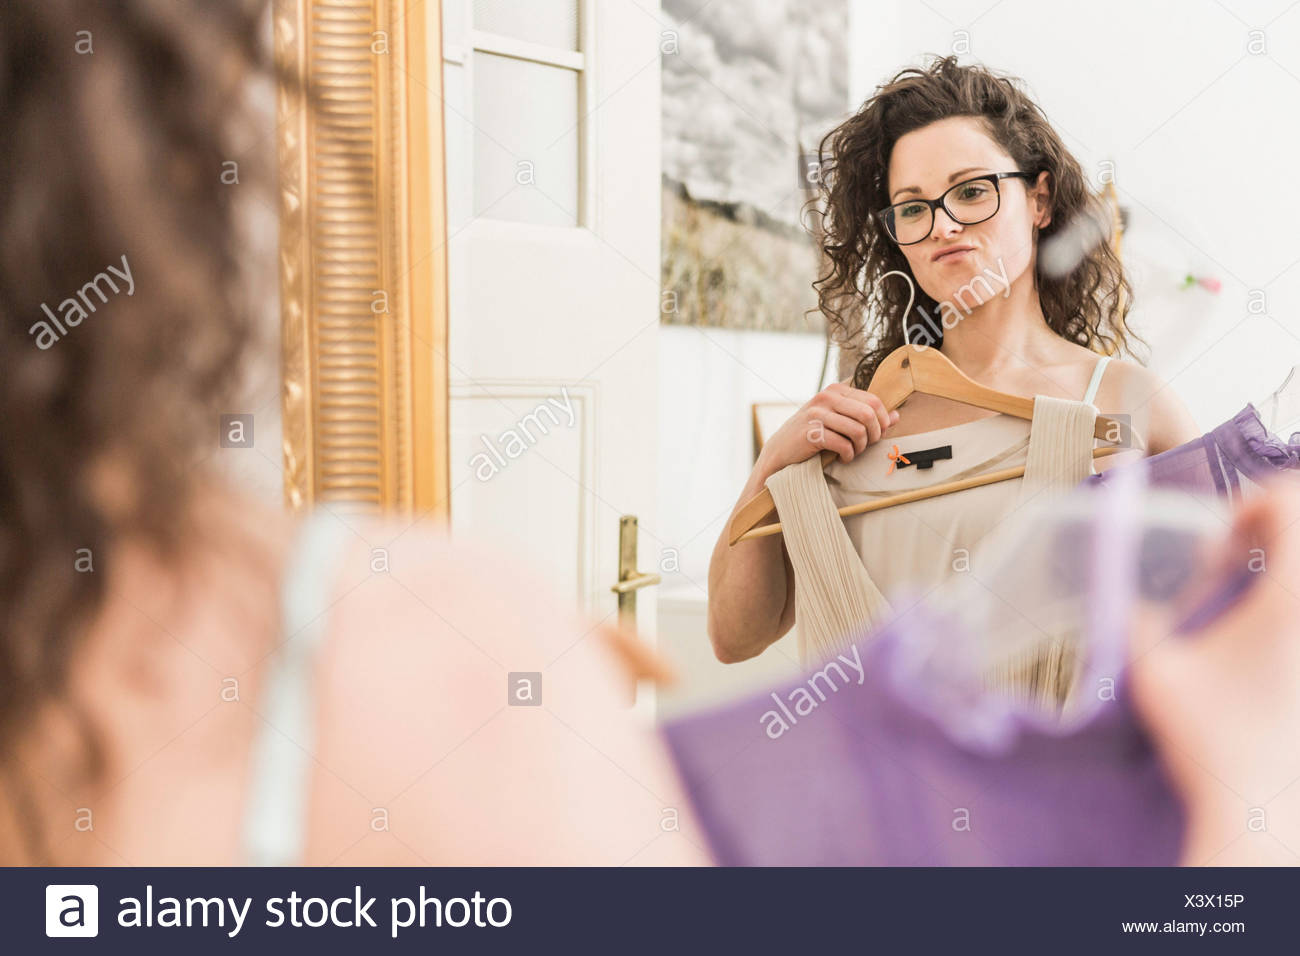 Mid adult woman holding up dress in front of mirror - Stock Image